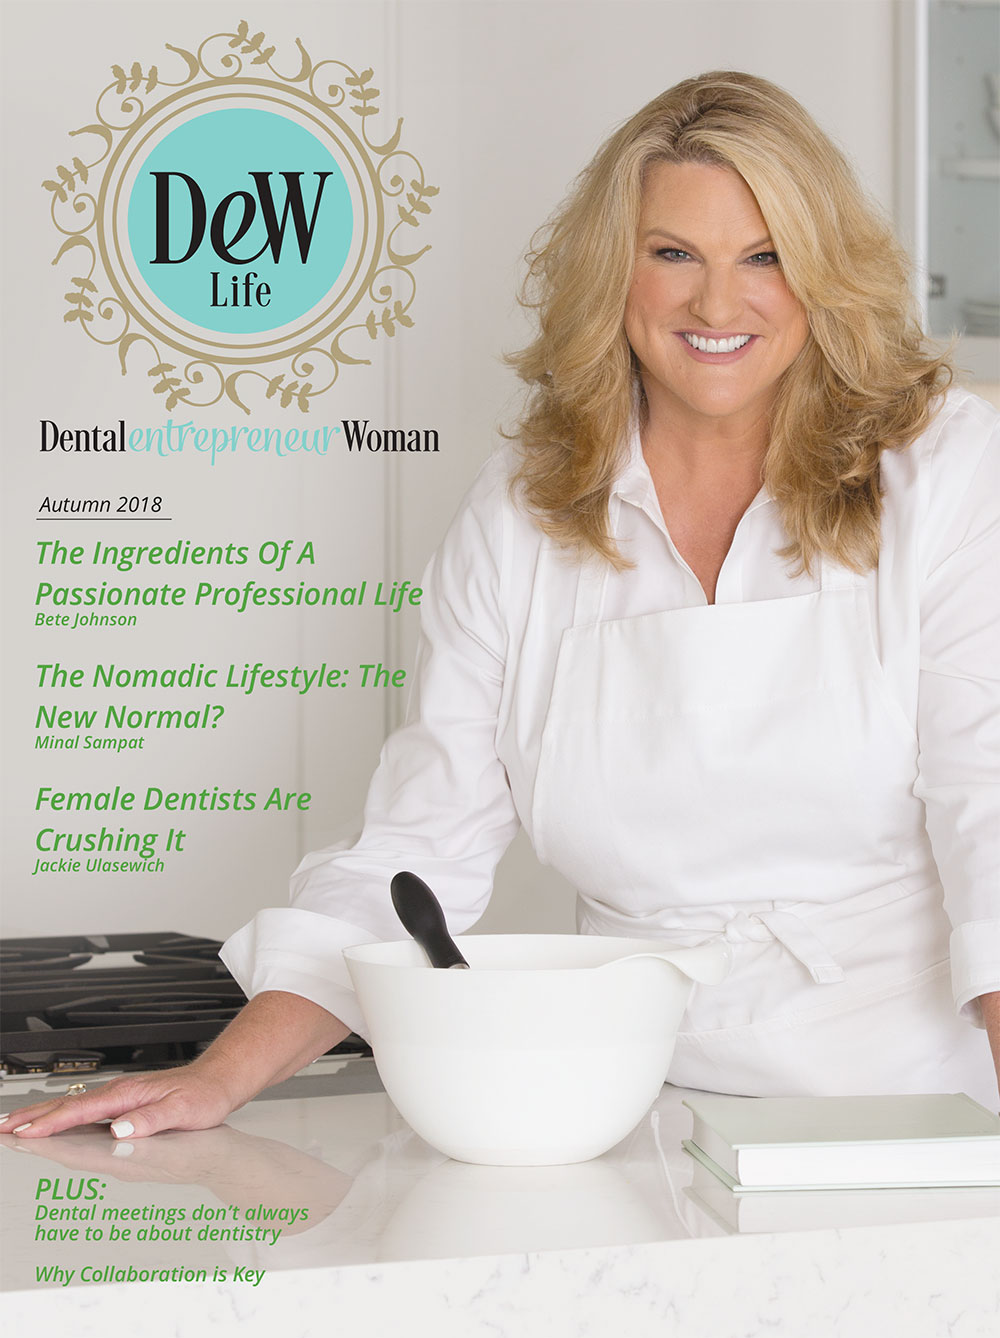 dental entrepreneur woman best magazine for women in dentistry autumn 2018